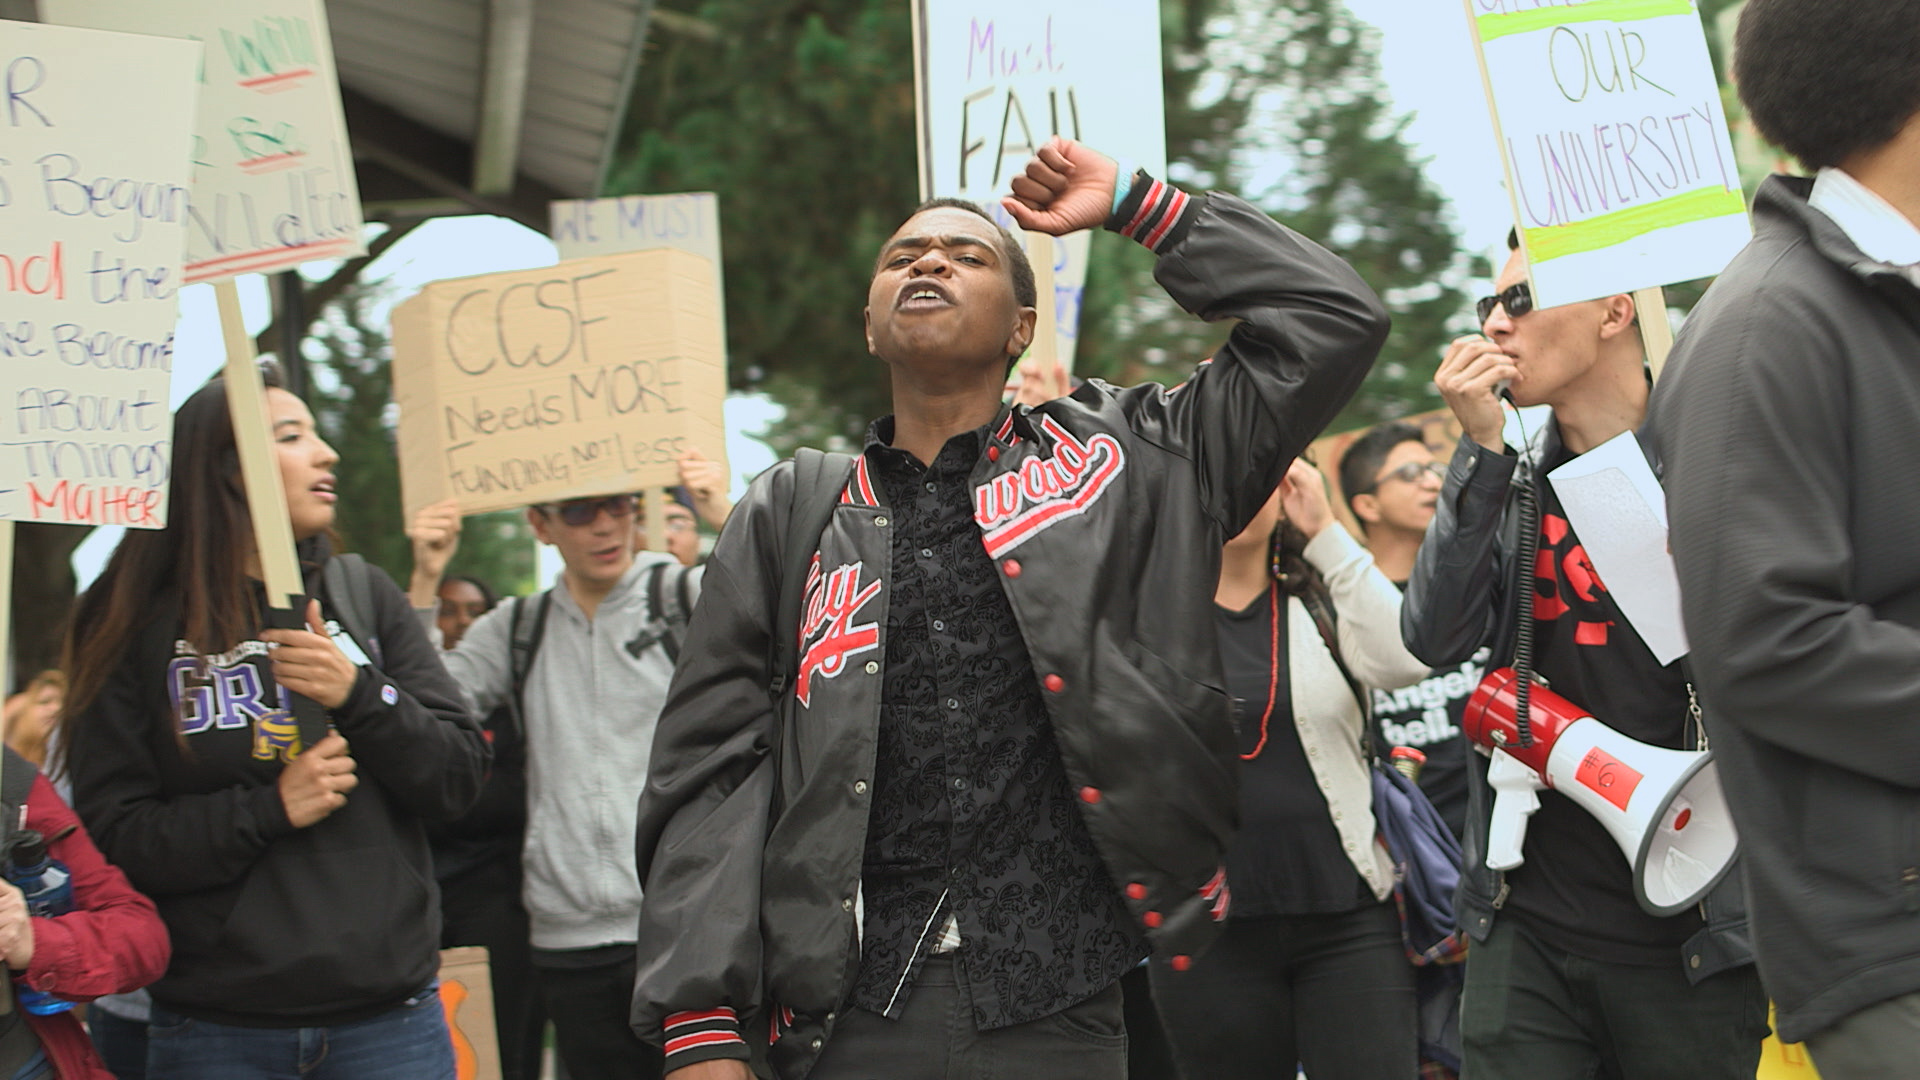 Black student protesting on college campus.